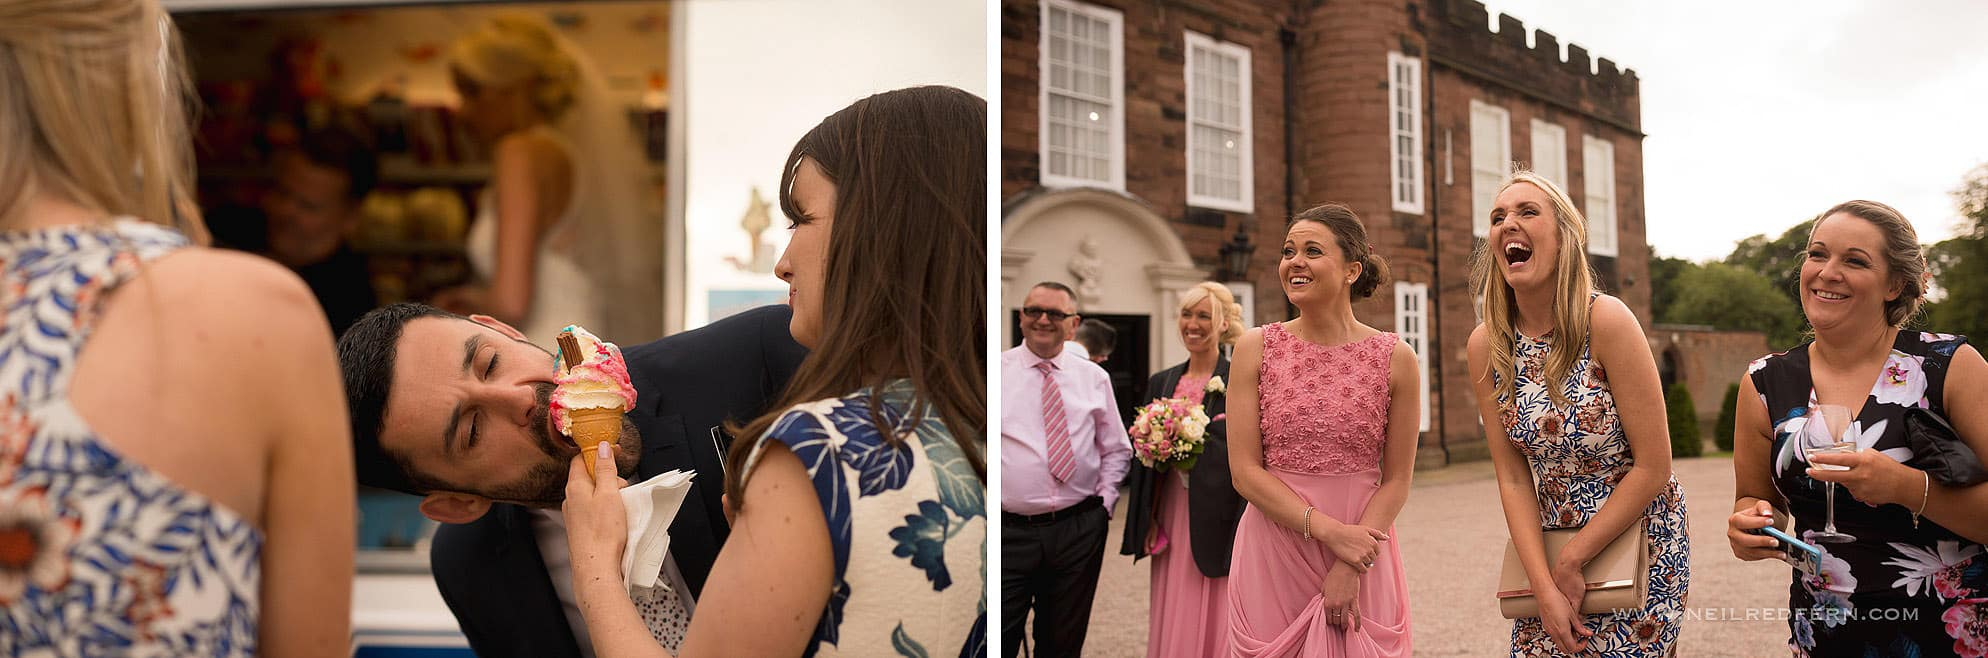 Knowsley Hall wedding photography 50